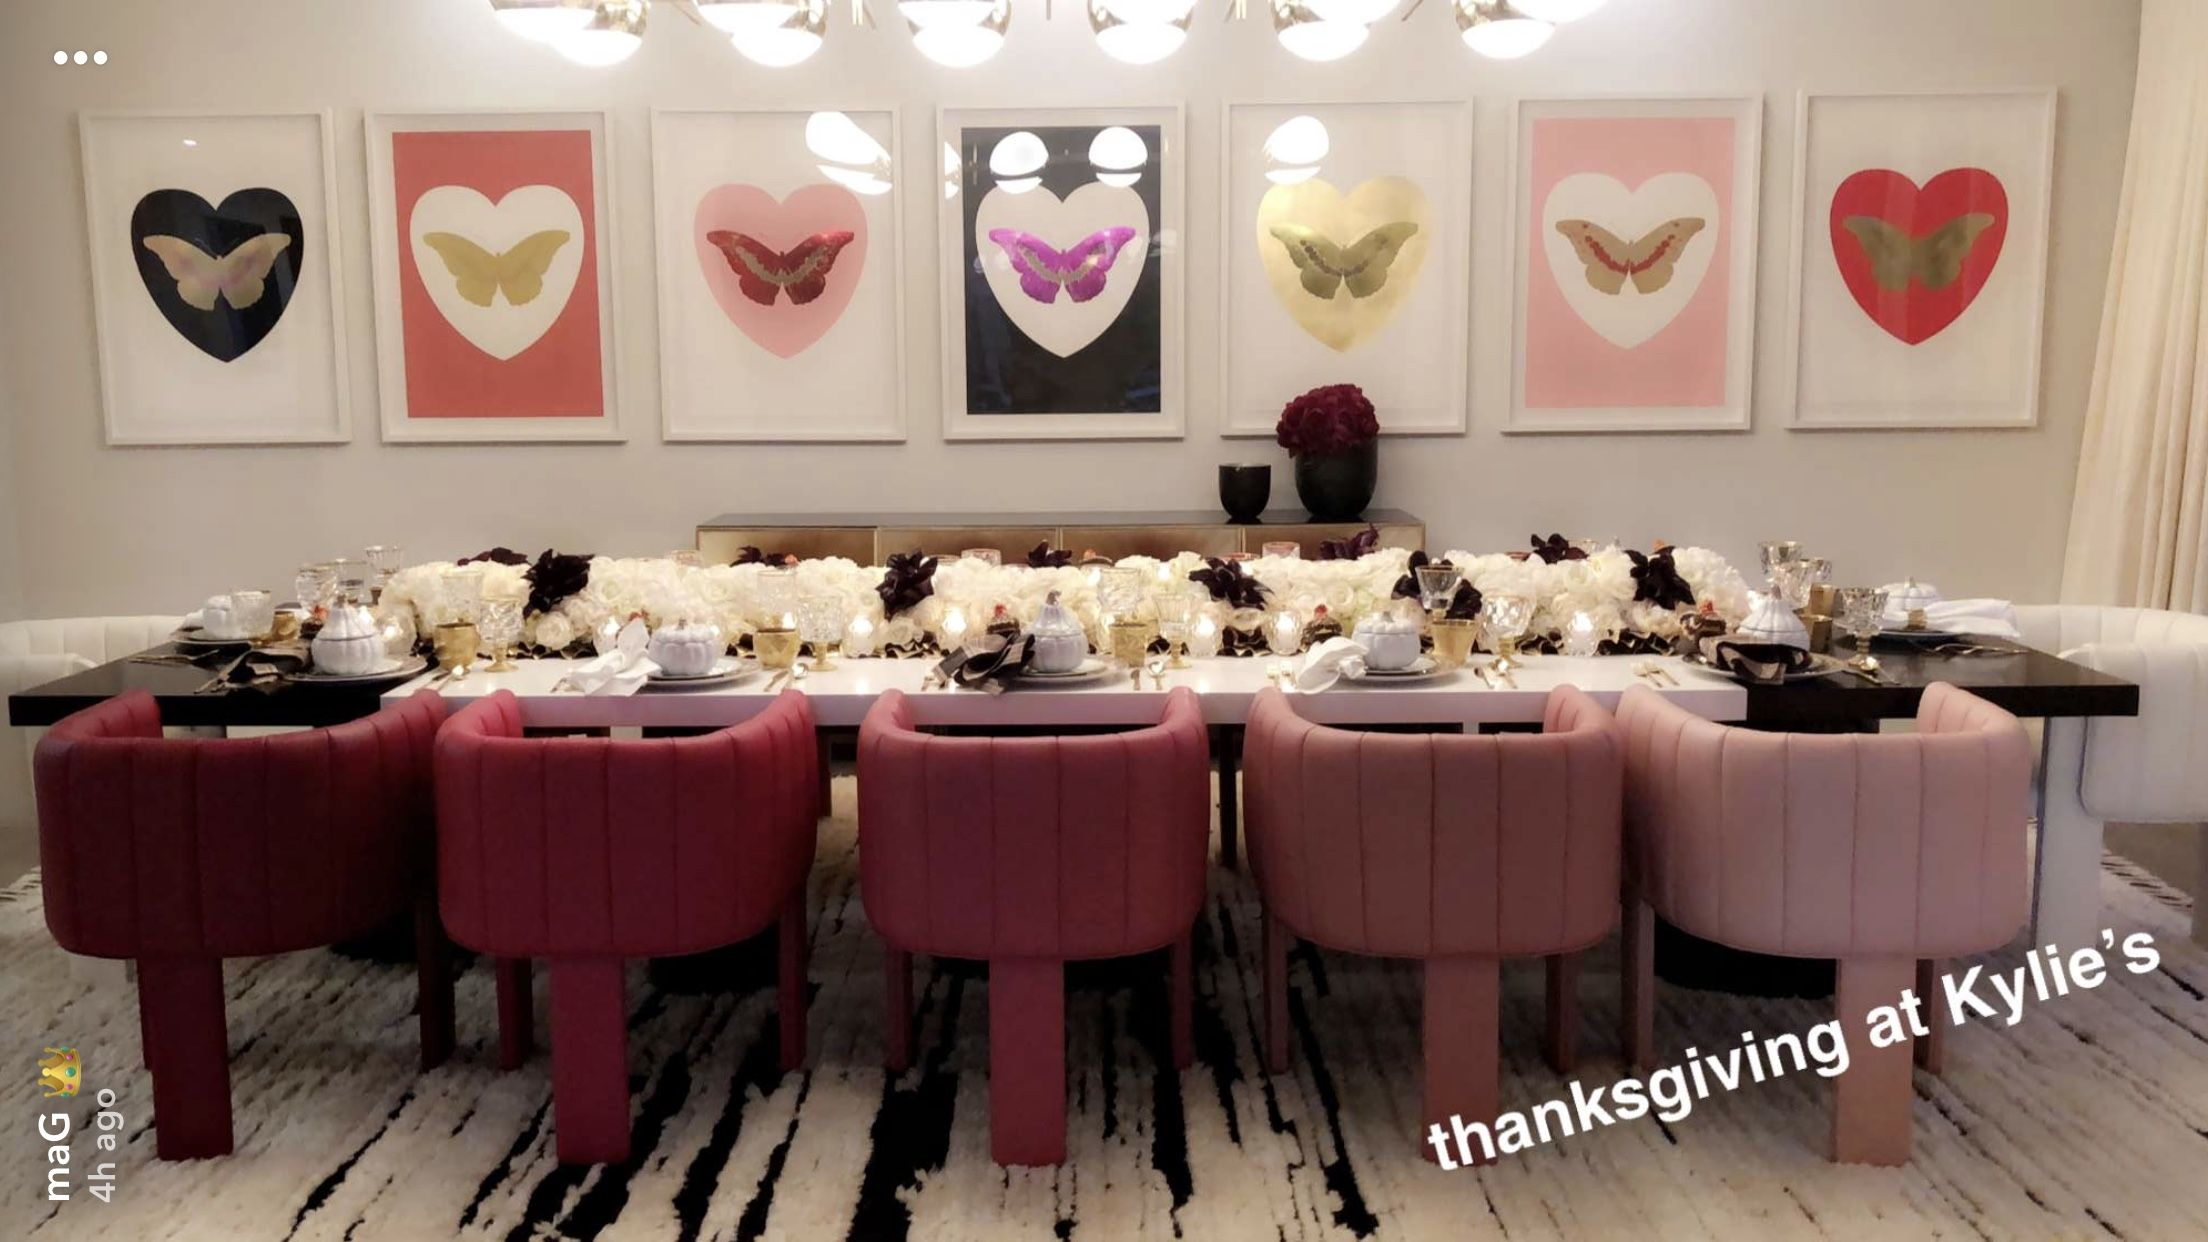 Ombre Dining Chairs For The Home Kylie Jenner House Kylie